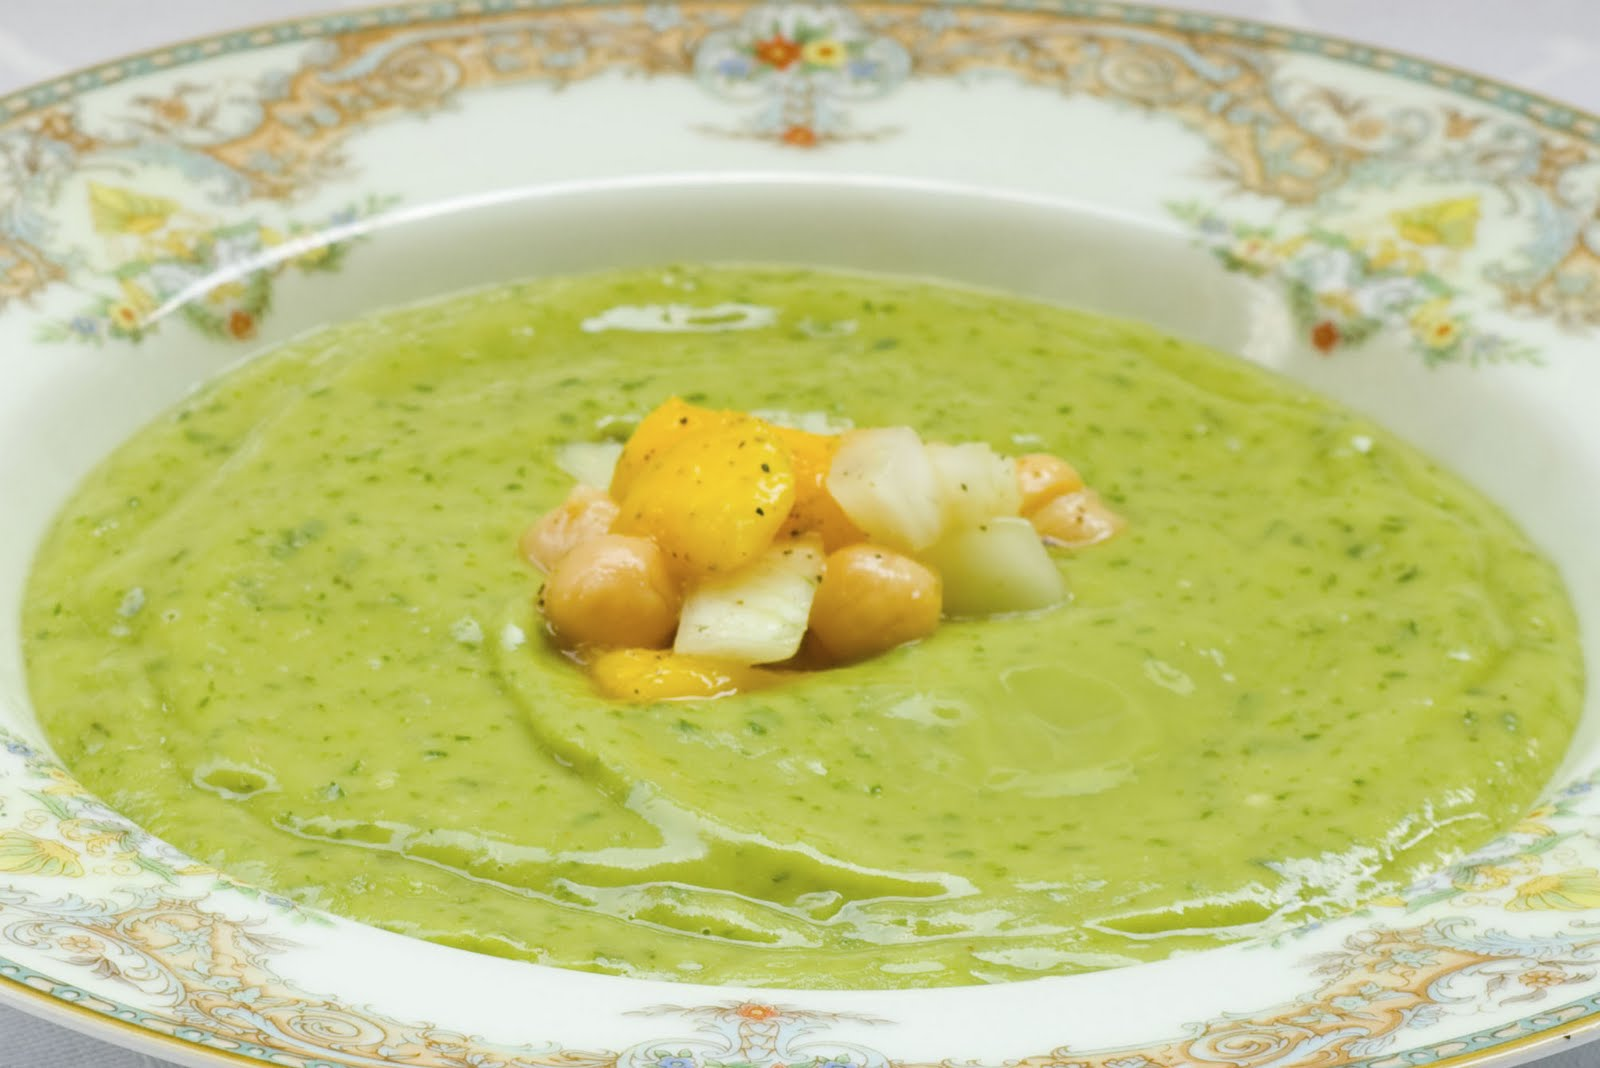 The Preppy Vegan: Ode to Avocados (and Chilled Avocado Soup)